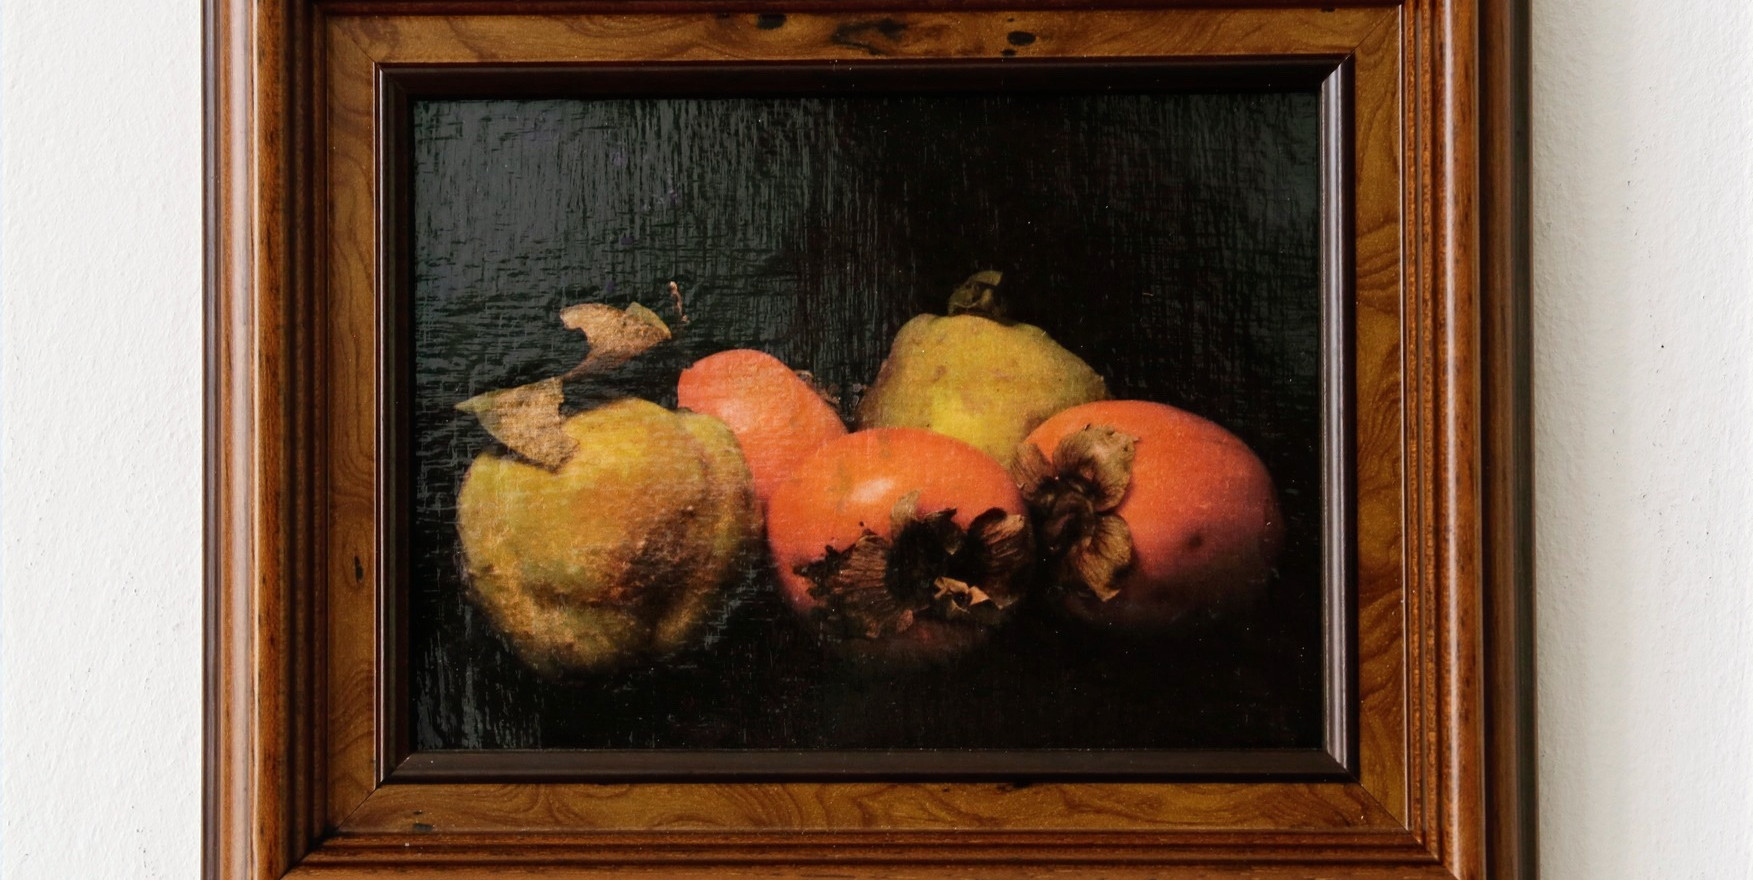 Quince and Persimmon in wooden frame